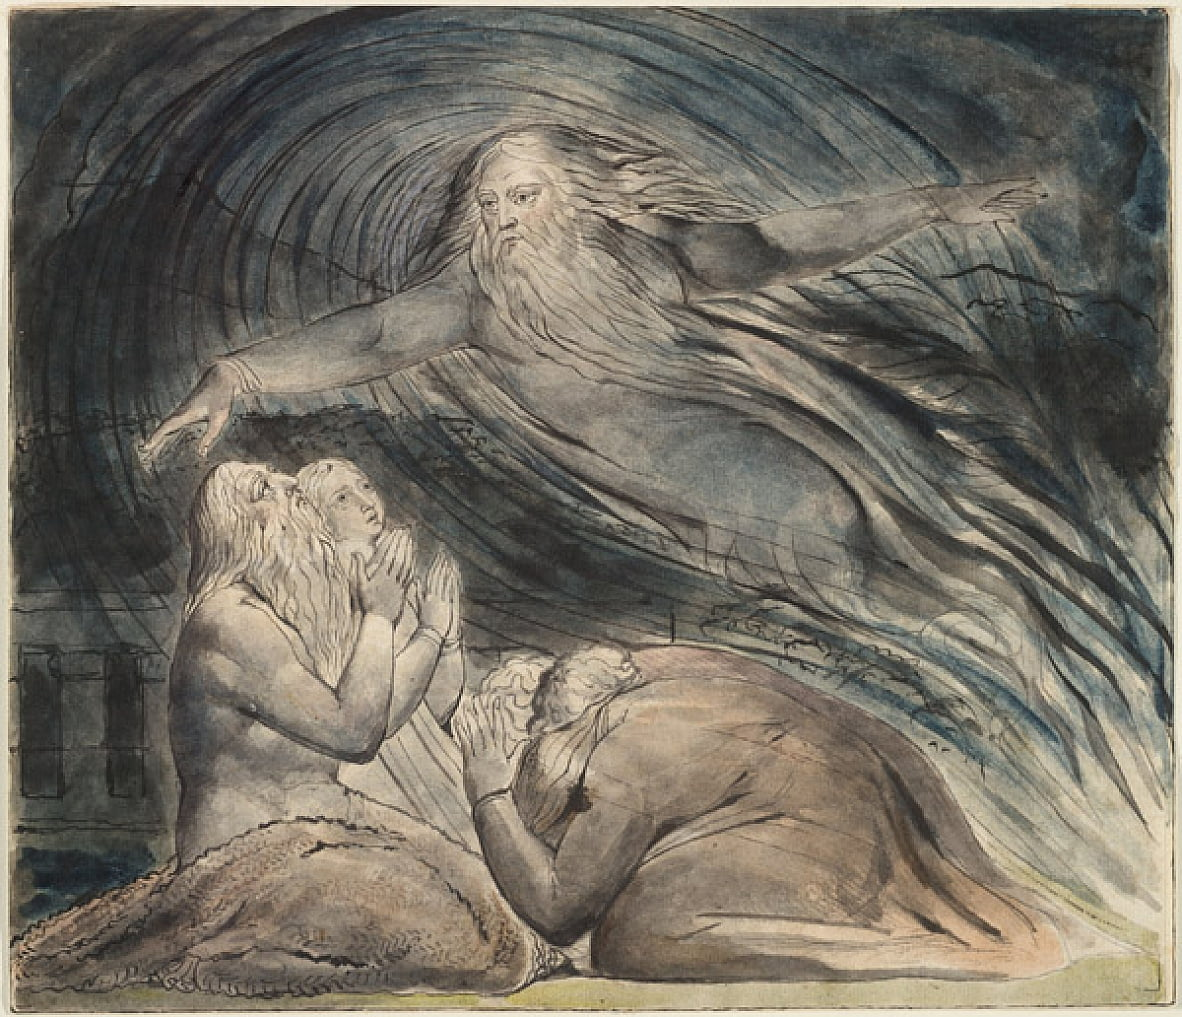 Jobs Evil Dreams door William Blake